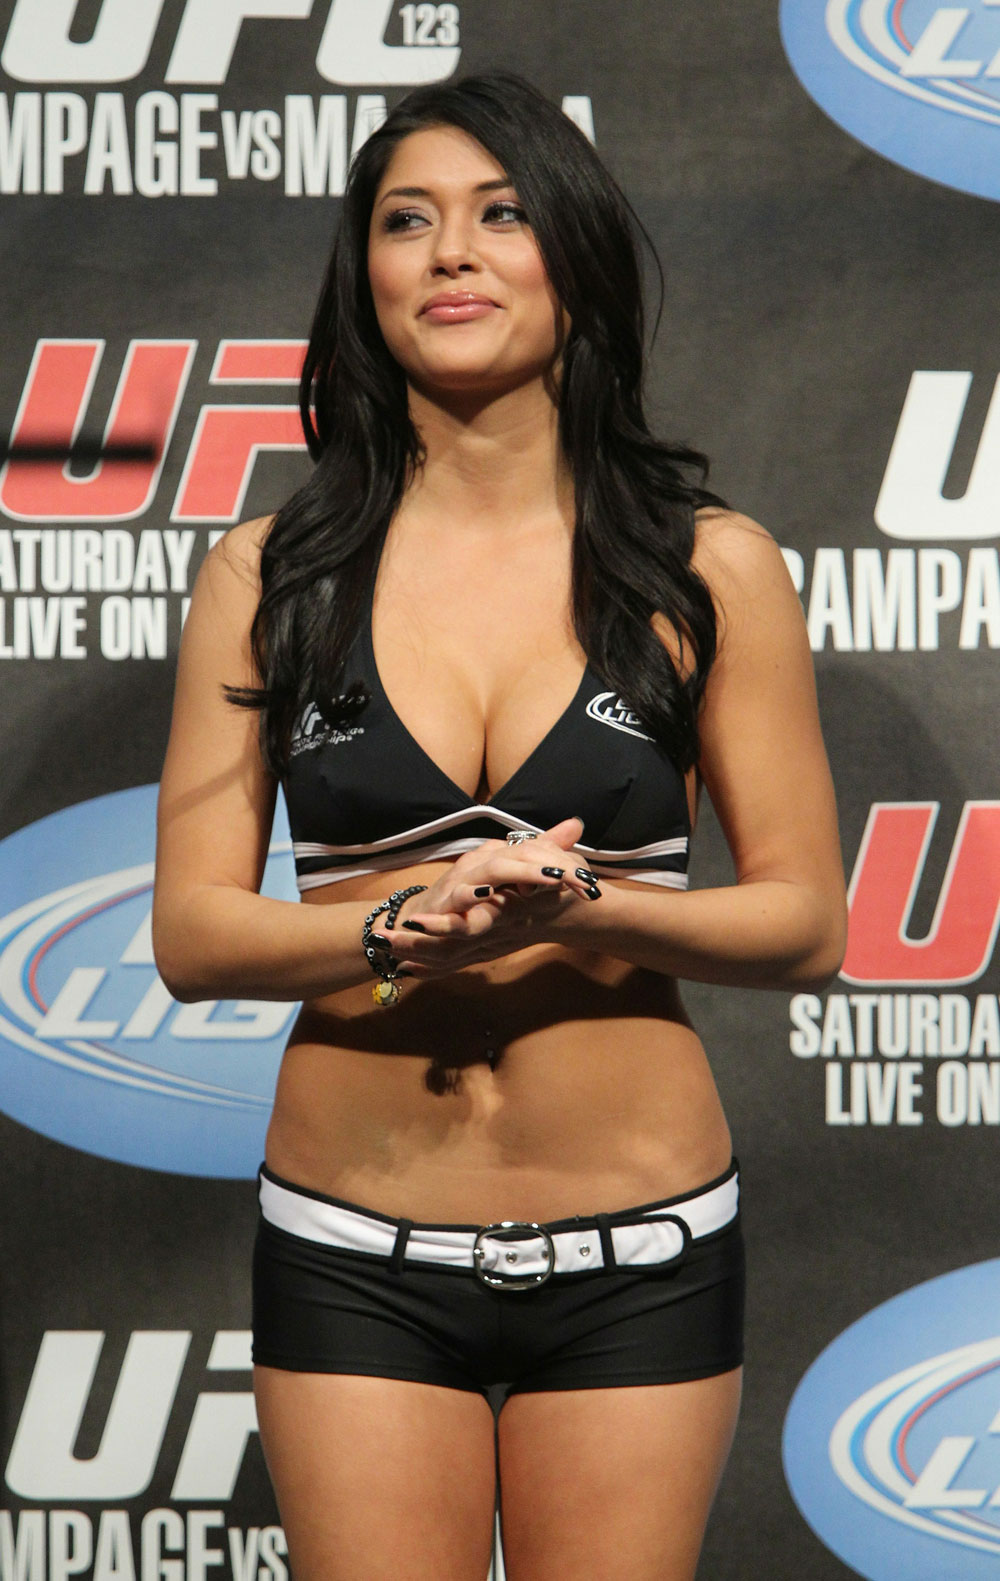 UFC Octagon Girl Arianny Celeste at the UFC 123 weigh-in at the Palace of Auburn Hills on November 19, 2010 in Auburn Hills, Michigan.  (Photo by Josh Hedges/Zuffa LLC/Zuffa LLC via Getty Images)